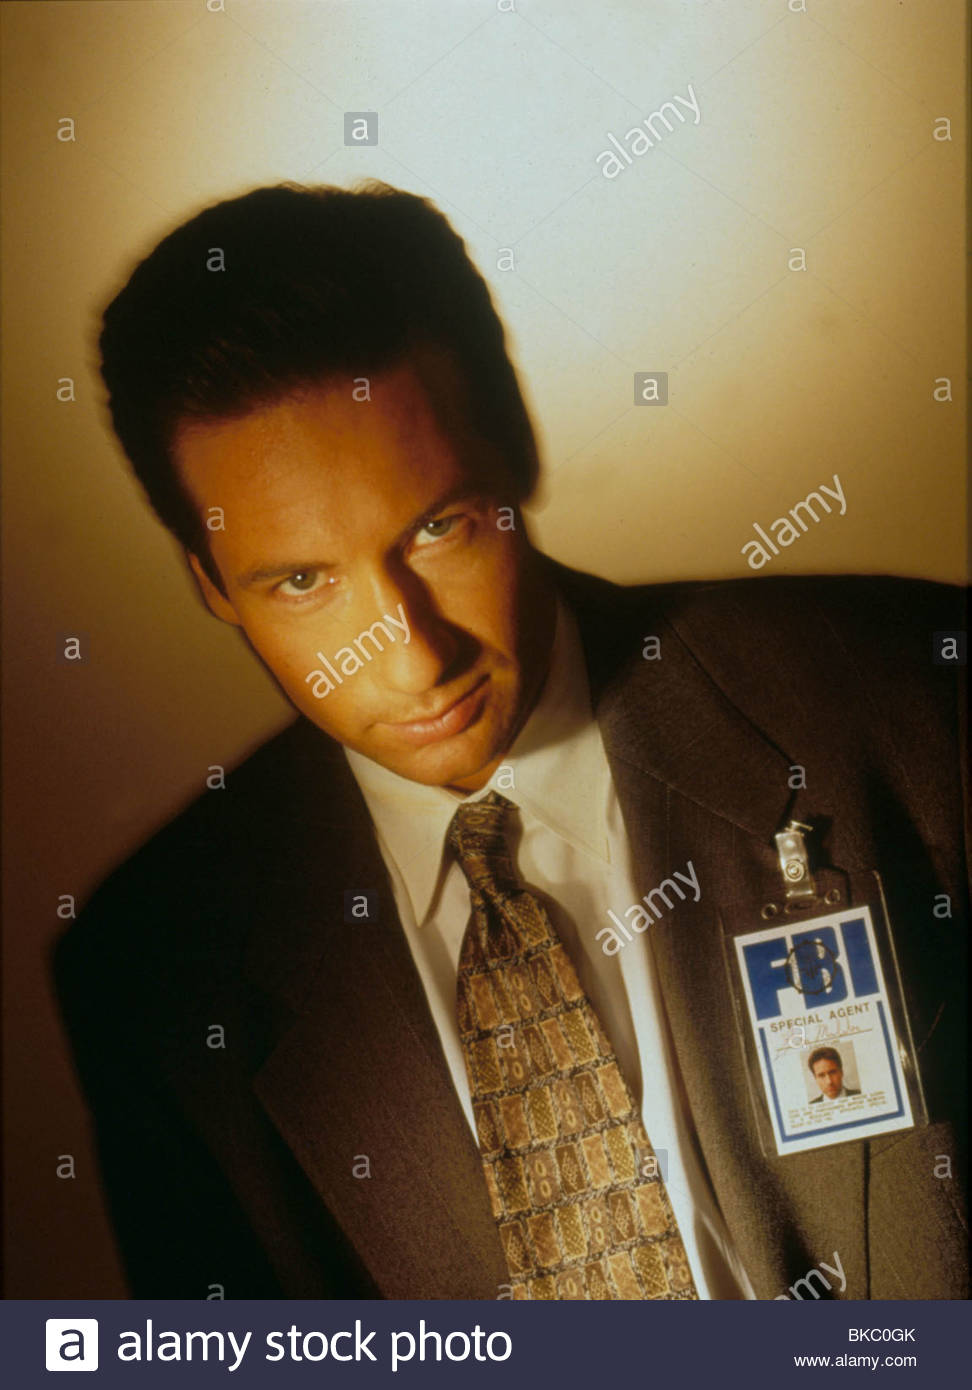 THE X FILES (TV) DAVID DUCHOVNY XFIL 125 - Stock Image